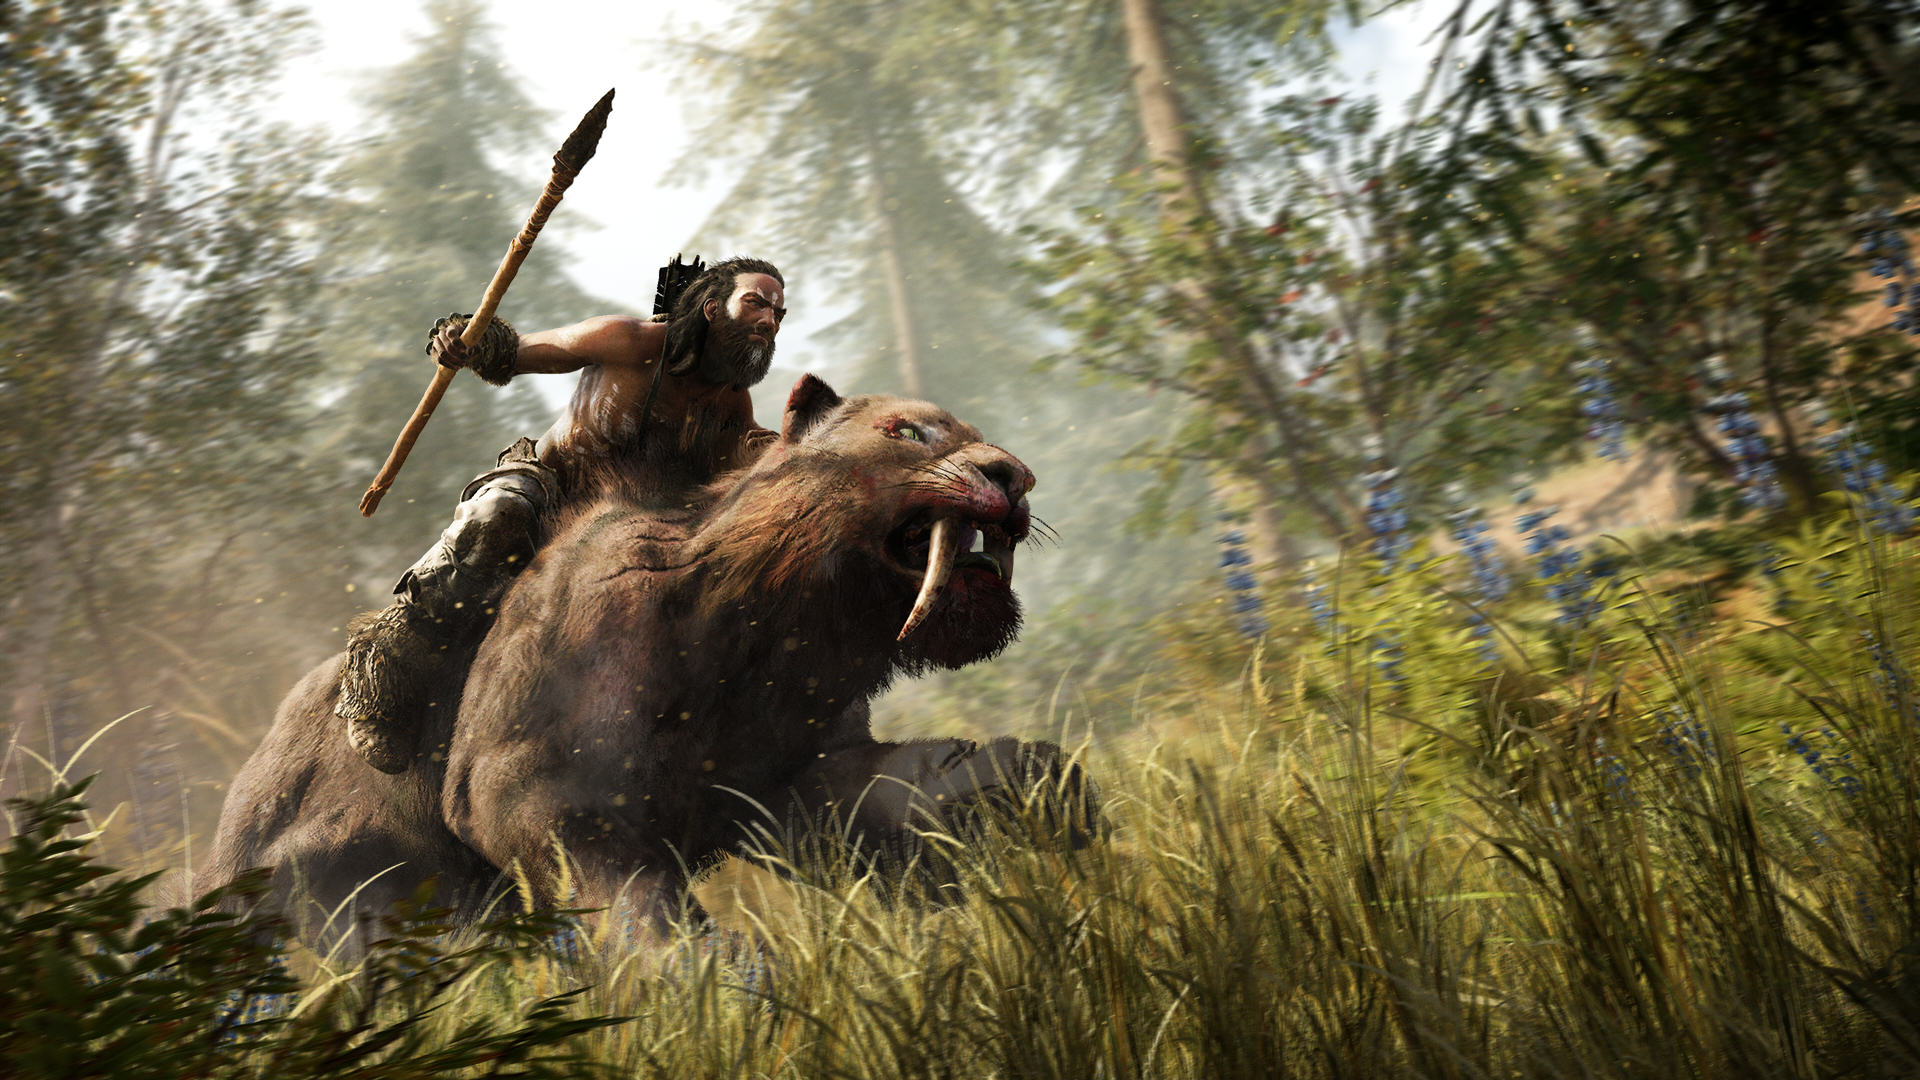 Far Cry Primal Is Shameless Pre Historic Fun, If A Little Shallow FCP Screen Riding Sabertooth BeastMaster Reveal 151204 5AM CET